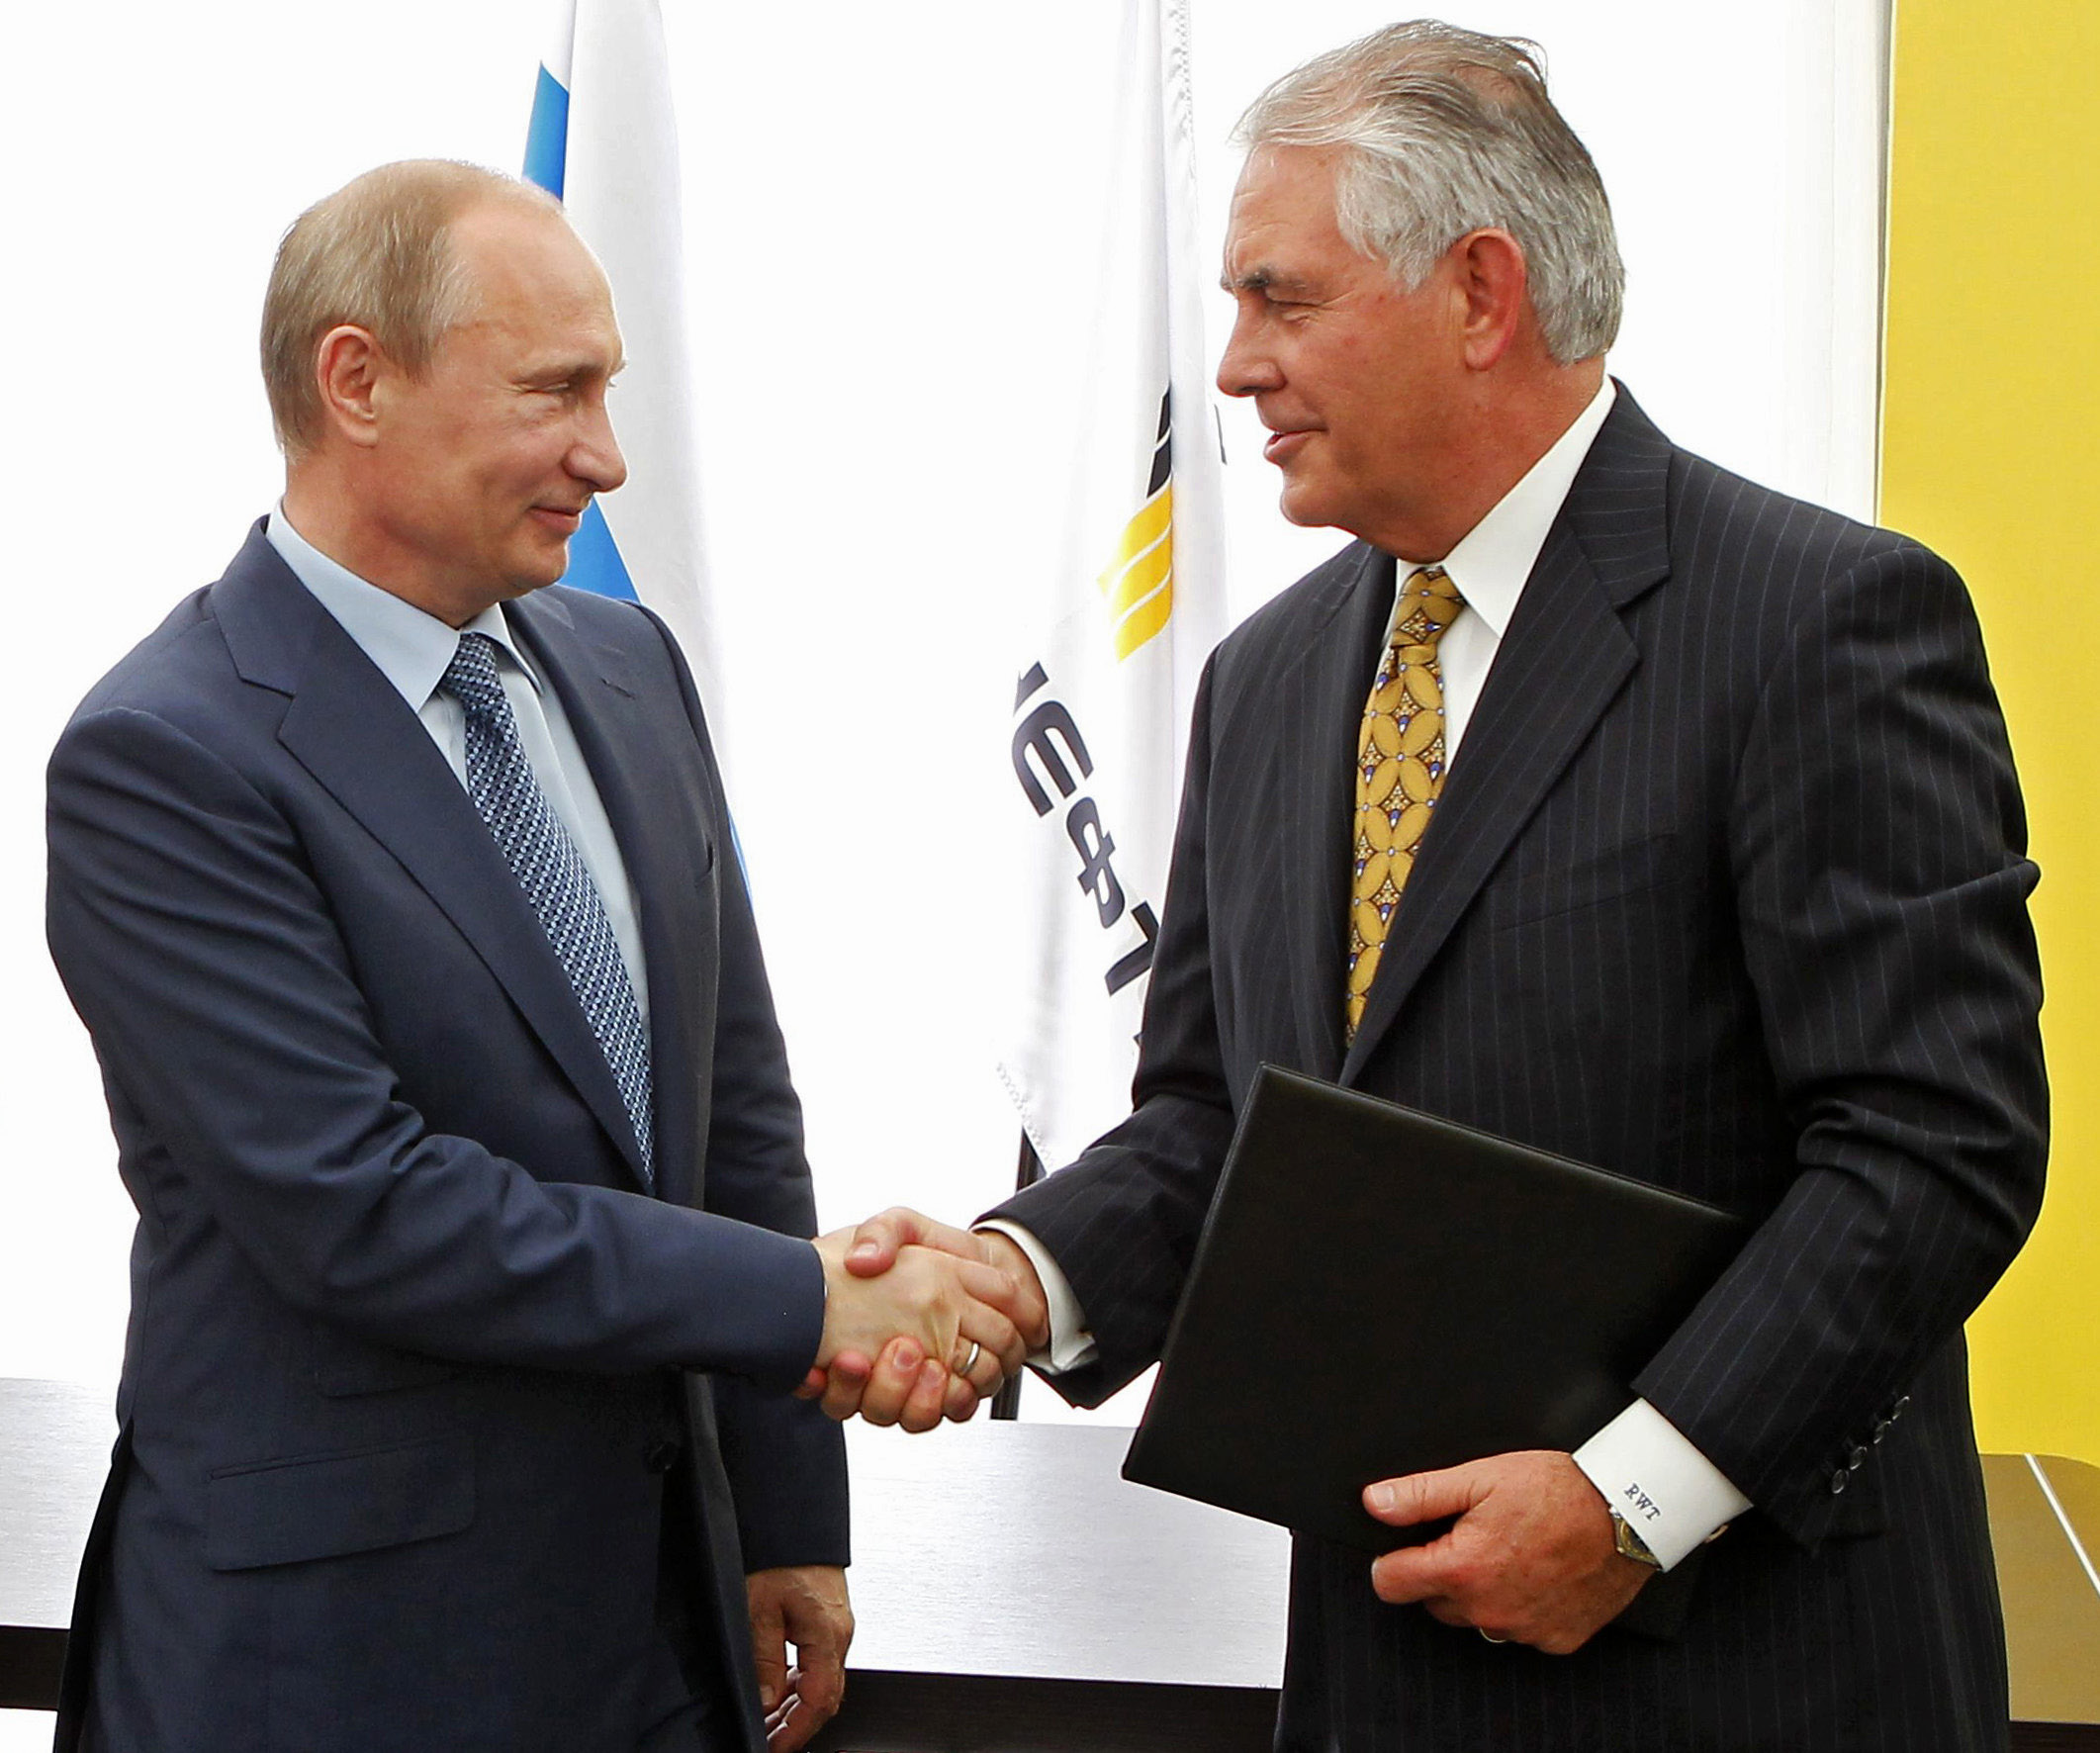 FILE- In this June 15, 2012, file photo, Russian President Vladimir Putin, left, and ExxonMobil CEO Rex Tillerson shake hands at a signing ceremony of an agreement between state-controlled Russian oil company Rosneft and ExxonMobil at the Black Sea port of Tuapse, southern Russia. President-elect Donald Trump selected Tillerson to lead the State Department on Monday, Dec. 12, 2016. (Mikhail Klimentyev/RIA-Novosti, Presidential Press Service via AP, Pool, File)